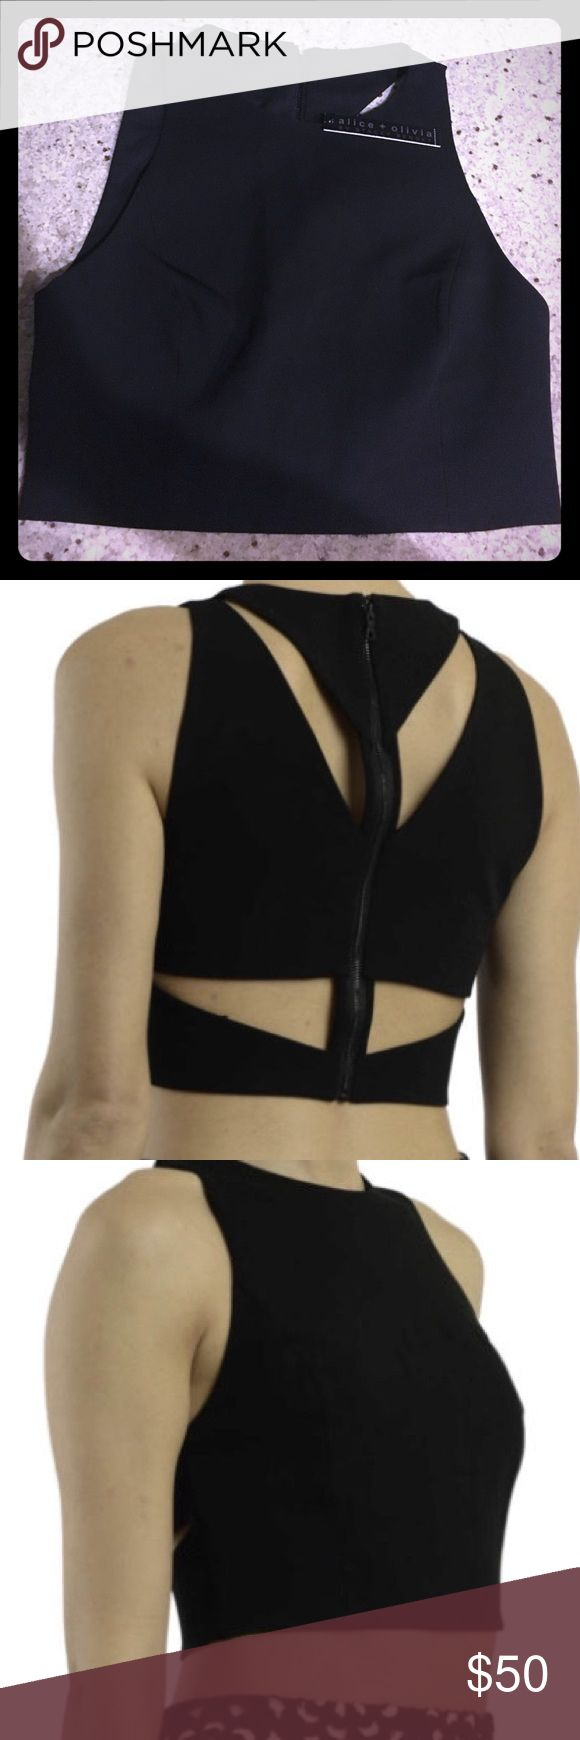 Alice + Olivia Barrett short top New with Tags - Sleeveless stretch fabric crew neck crop top featuring rear zip fastening and openworks. Alice + Olivia Tops Crop Tops